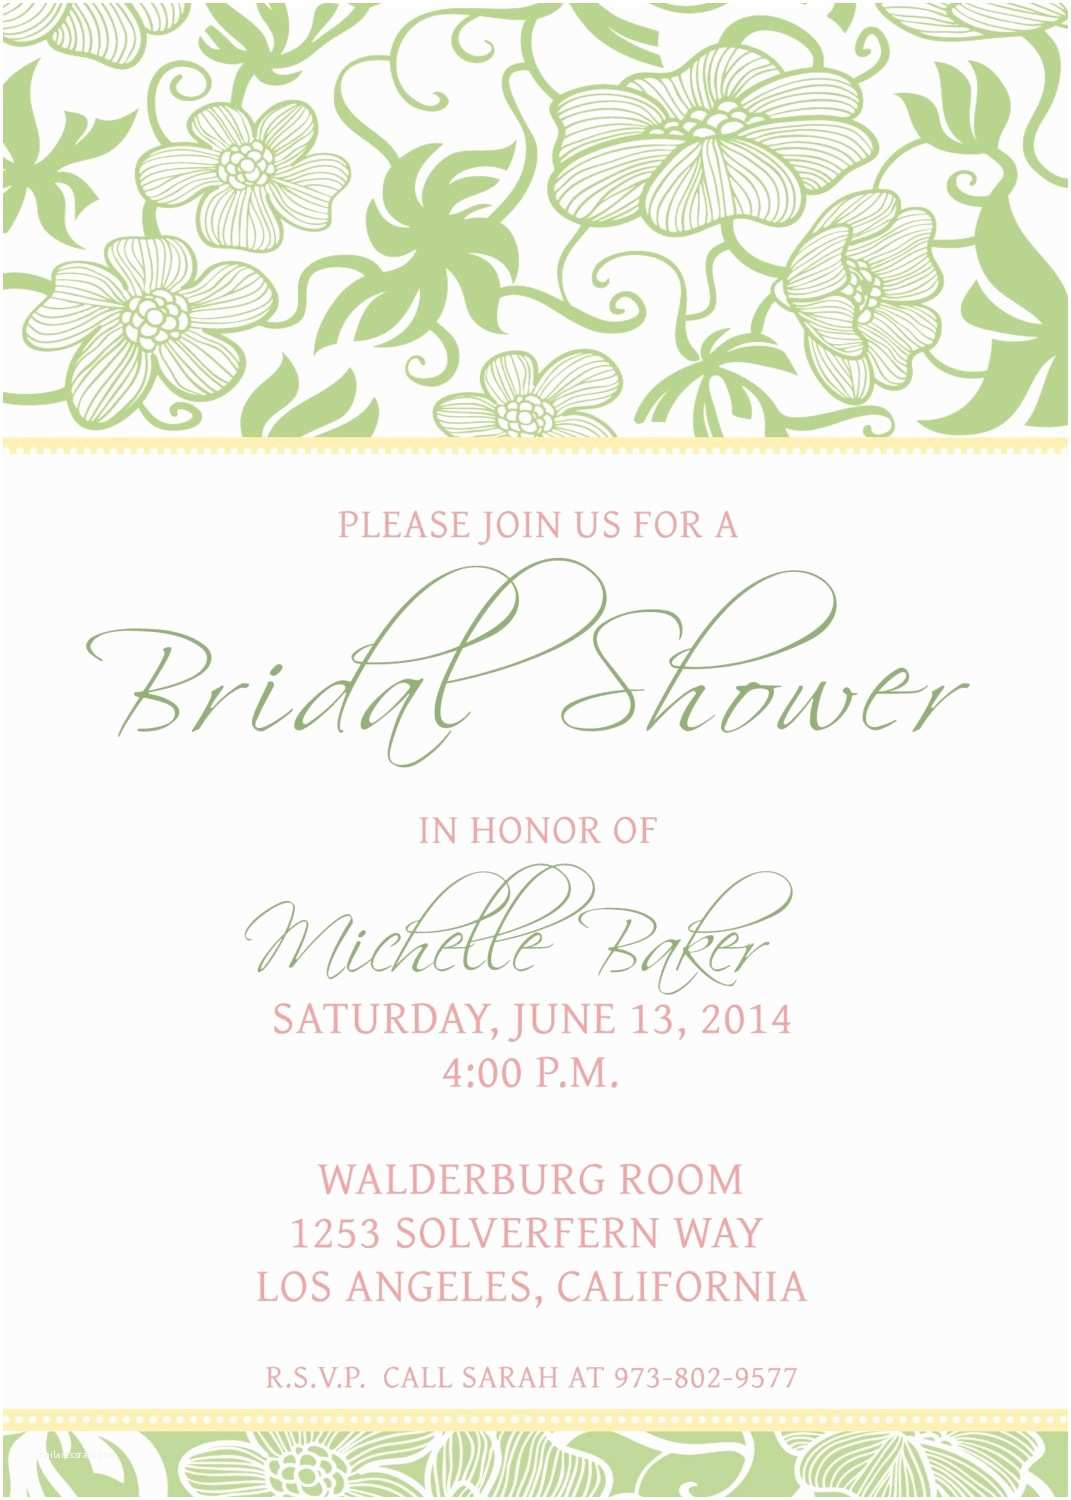 How To Print Out Wedding Invitations How To Make Your Own Wedding Invitations